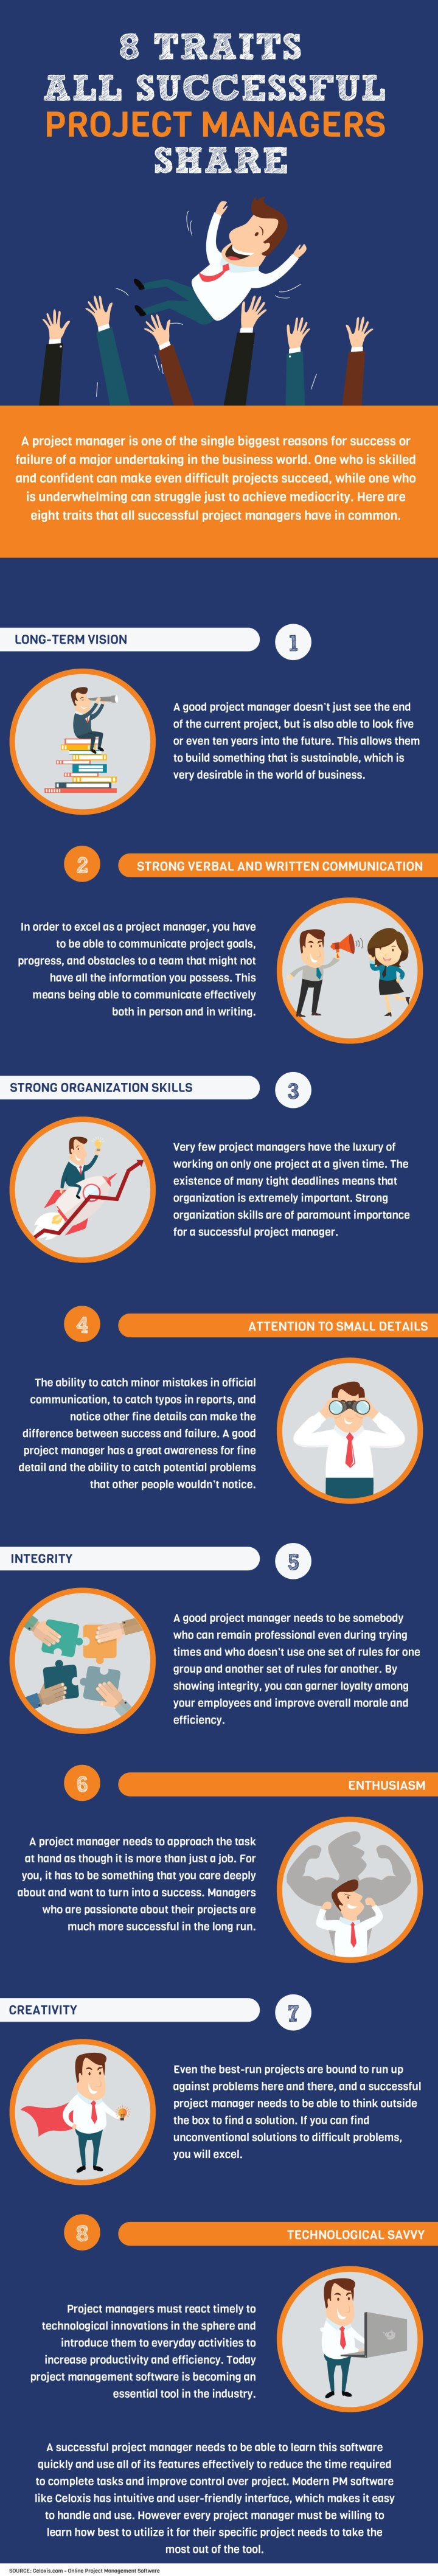 INFOGRAPHIC: 8 Traits All Successful Project Managers Share